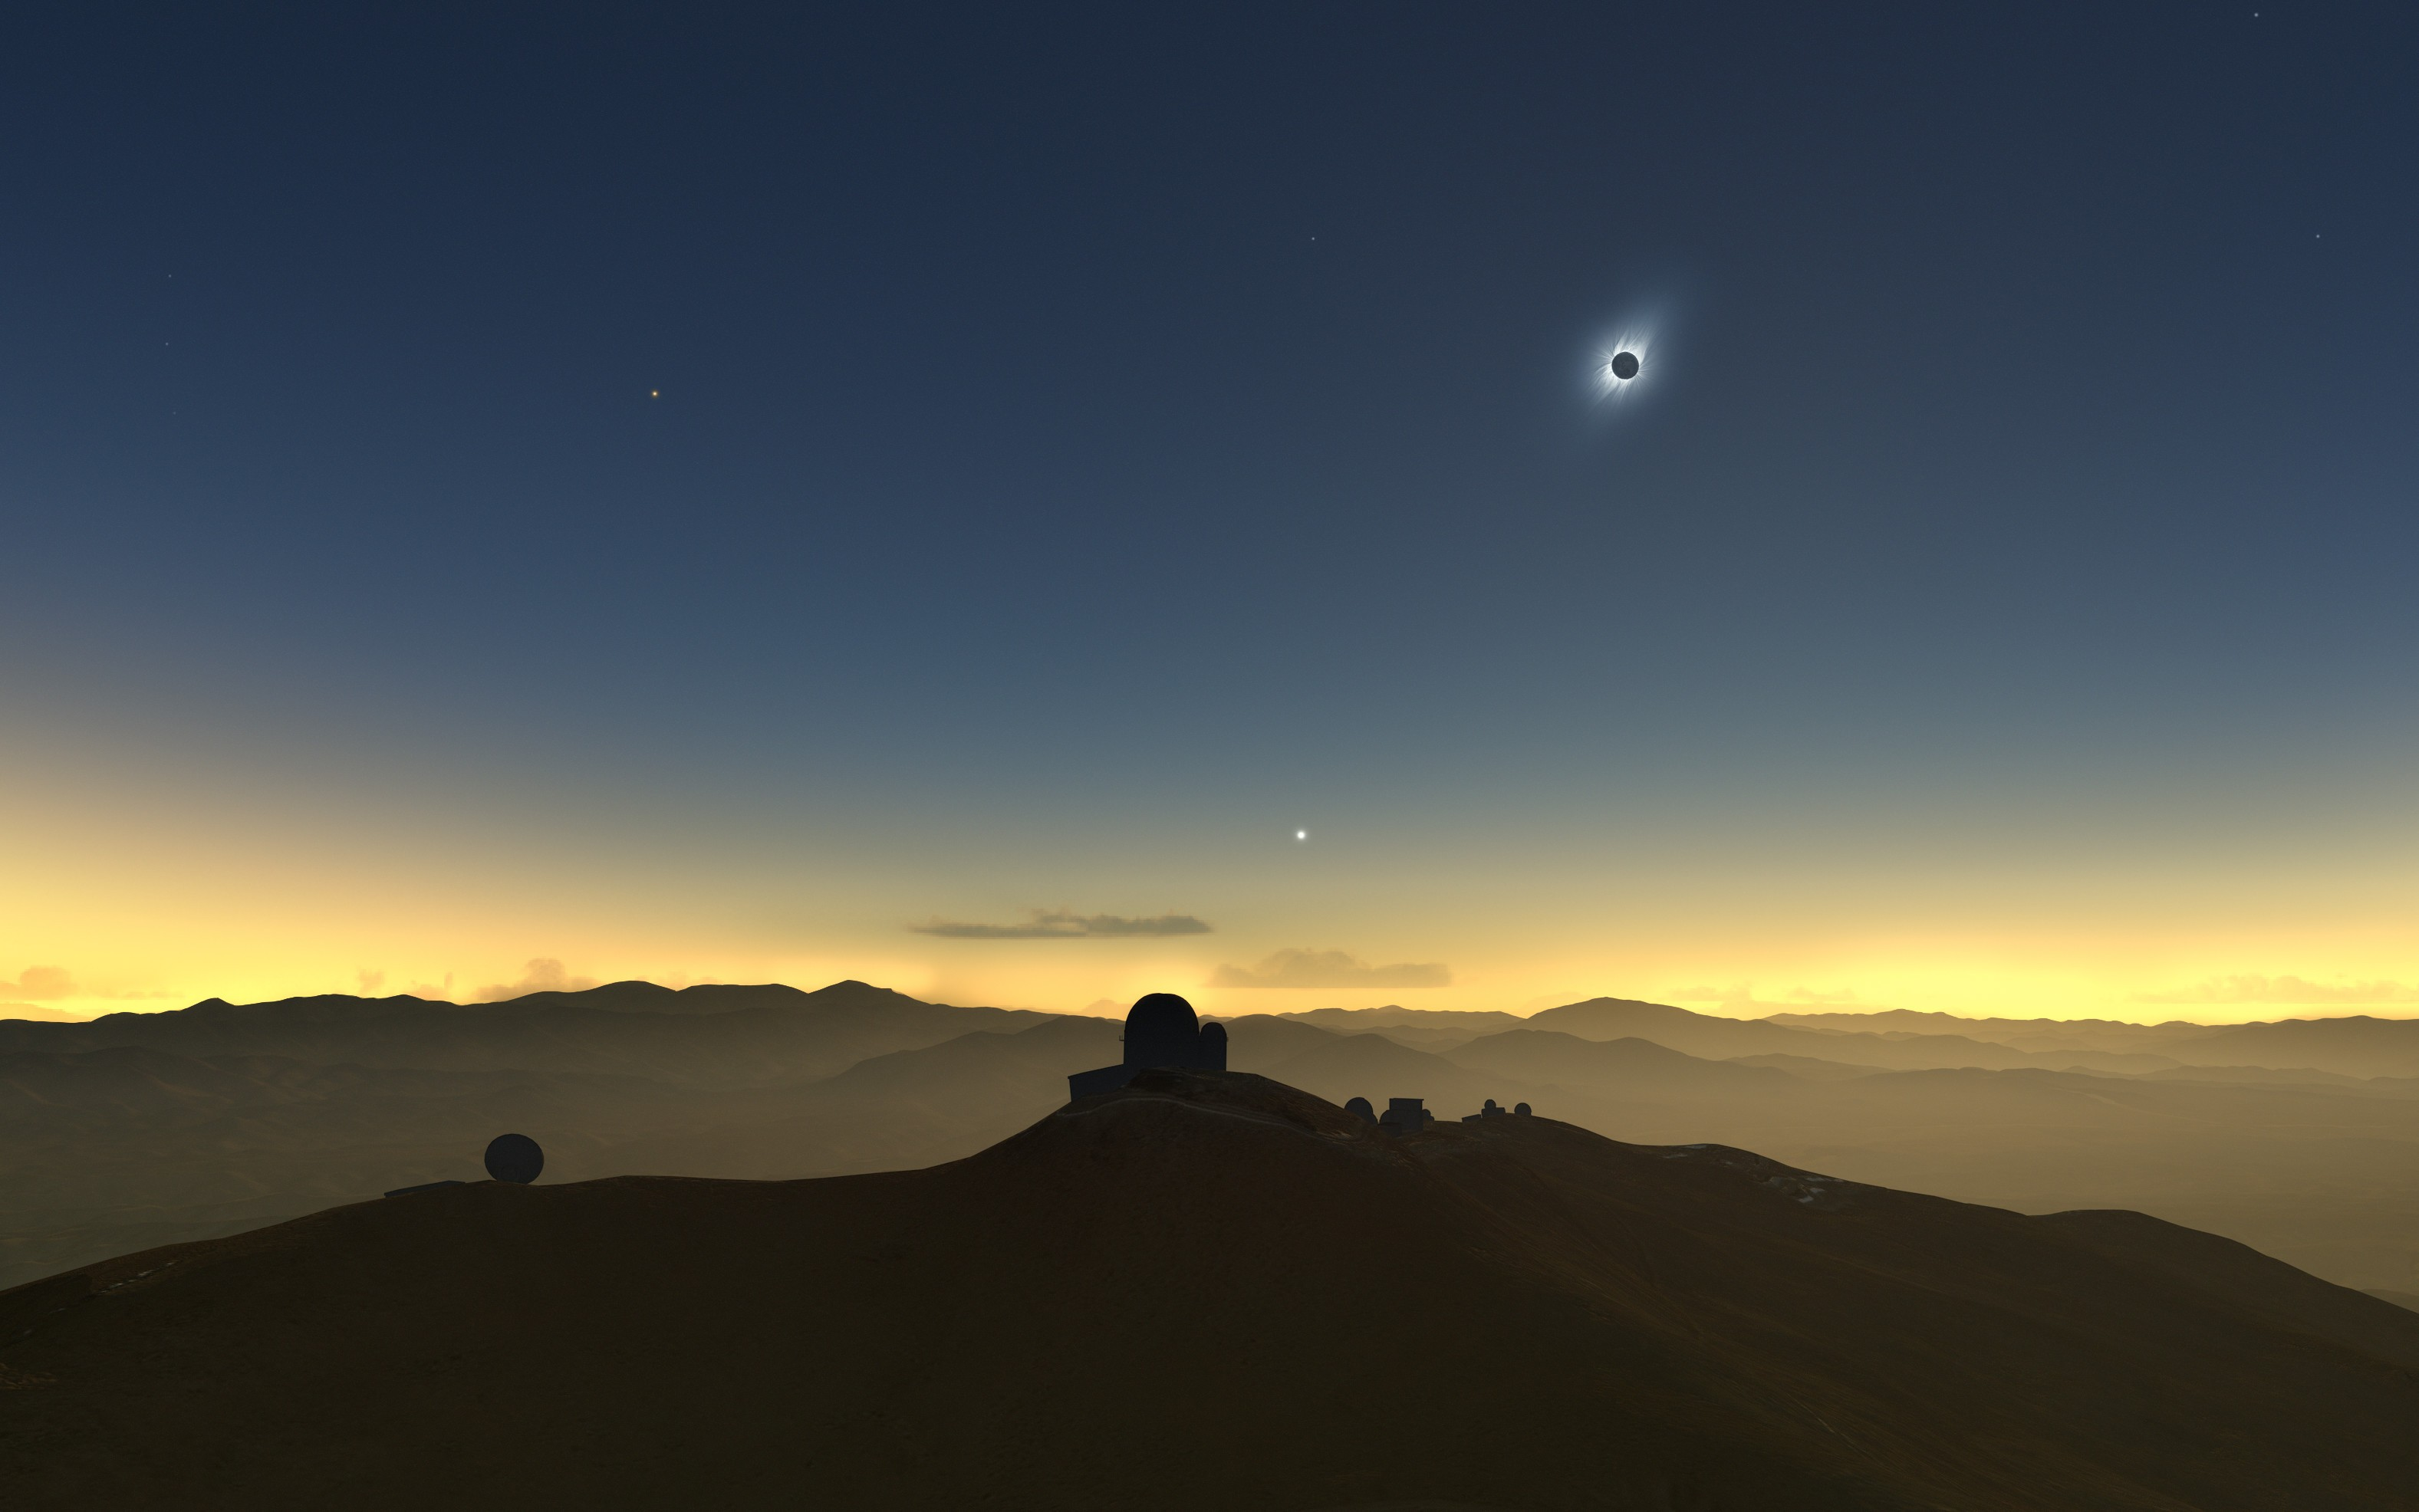 This artist's impression shows how the total solar eclipse of 2 July 2019 could appear from ESO's La Silla Observatory in Chile if there are no clouds. The Sun will be quite low in the western sky and, if the skies are clear, several planets and bright stars should be also visible.